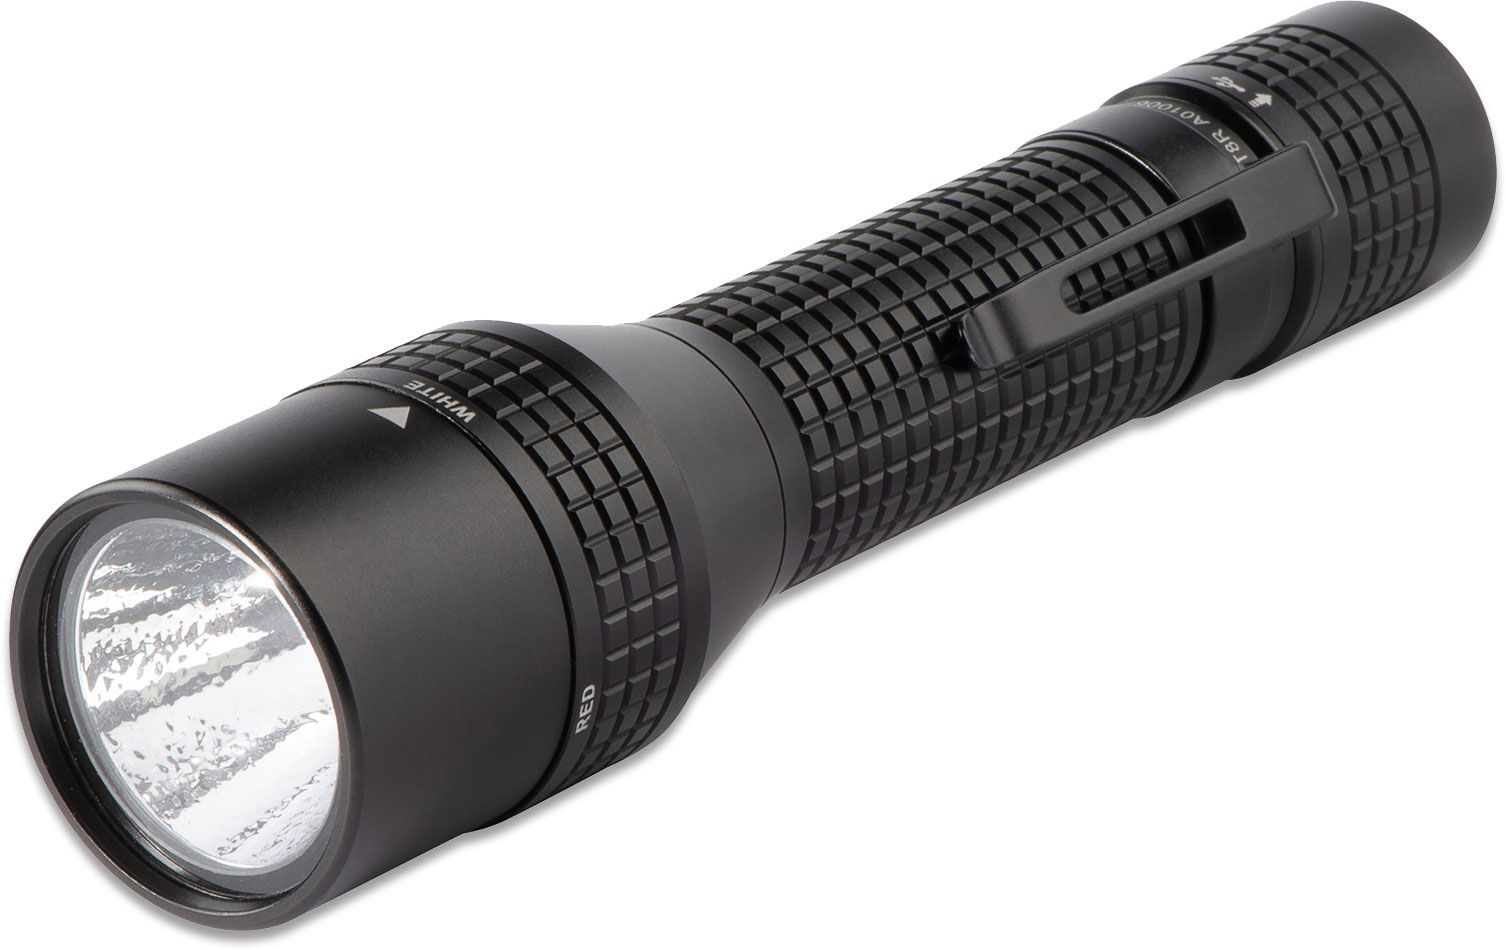 Nite Ize INOVA T8R PowerSwitch Rechargeable Dual Color LED Flashlight, 762 Max Lumens